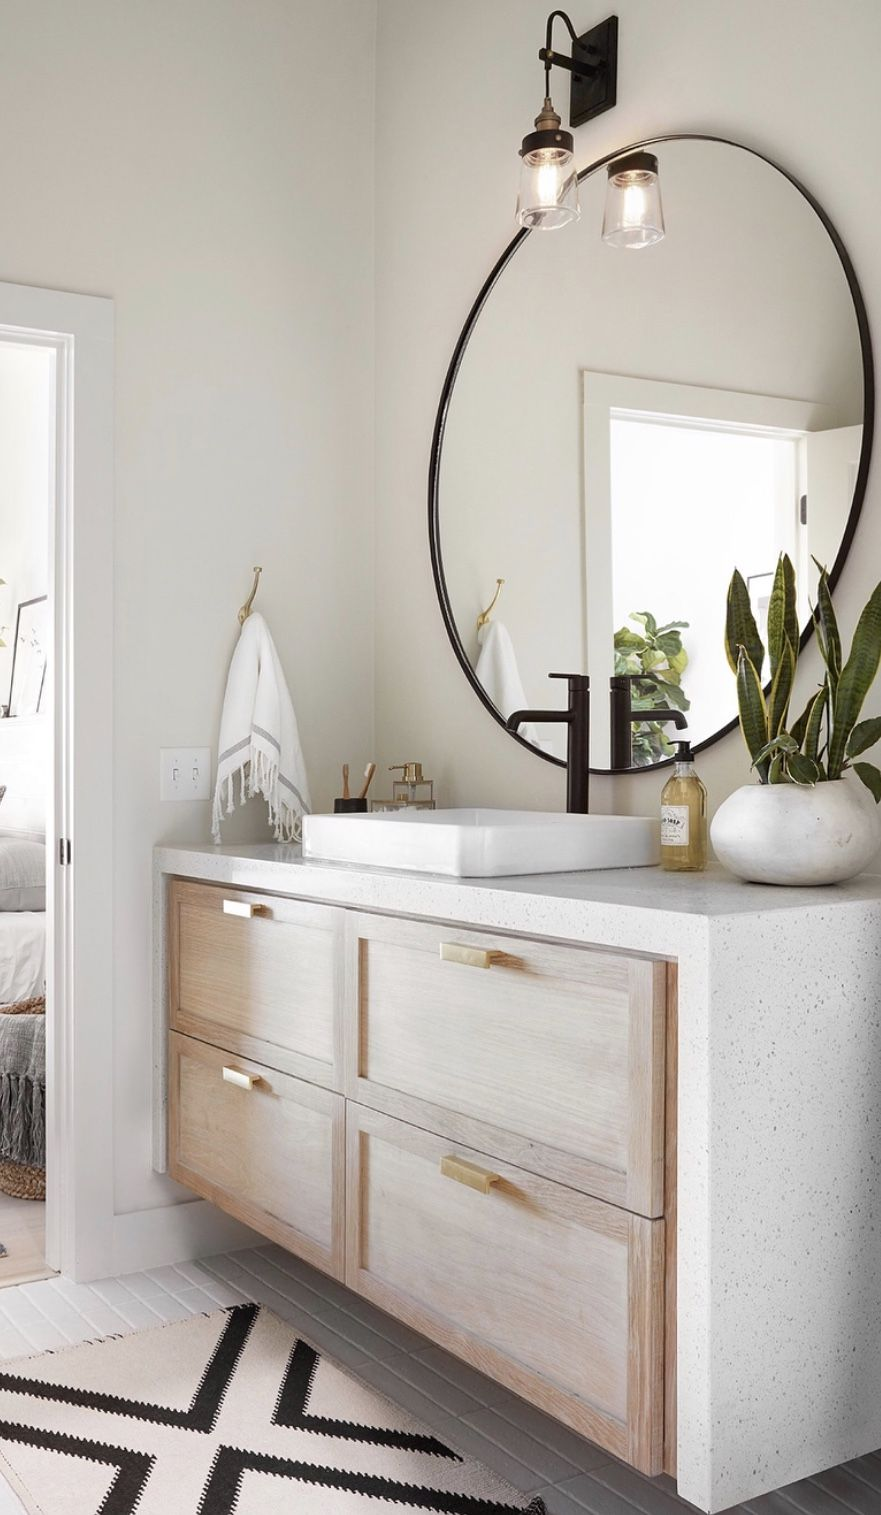 Pin By Kelly Rich On Homes Simple Bathroom Designs Large